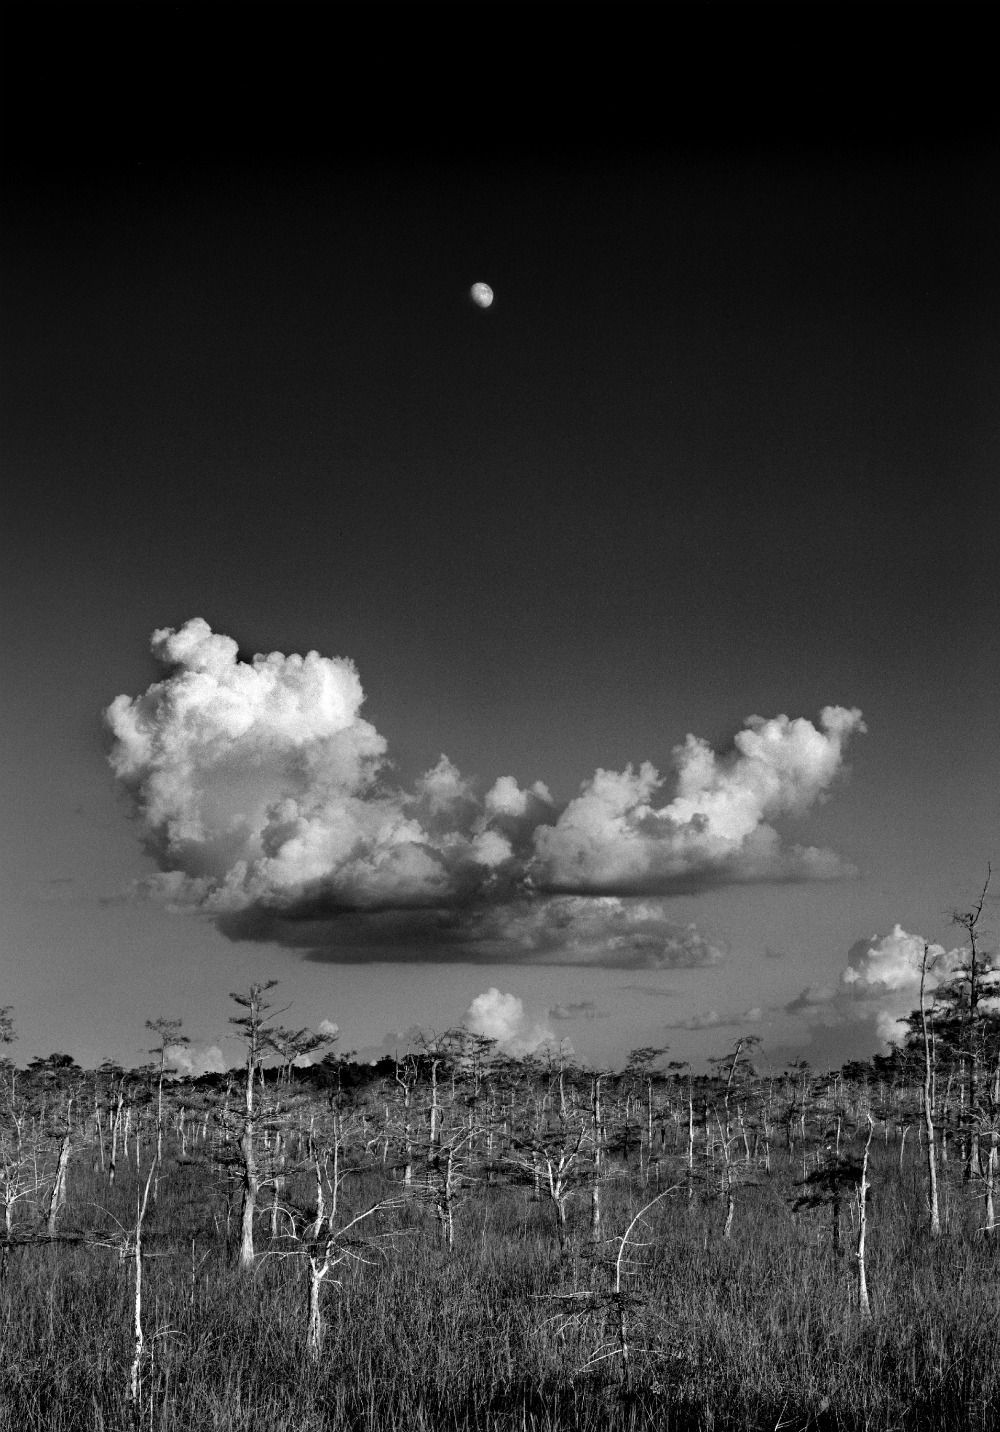 Moon rise everglades florida by clyde butcher 1986 i own a 13x18in version of this which i bought from the artist in 1993